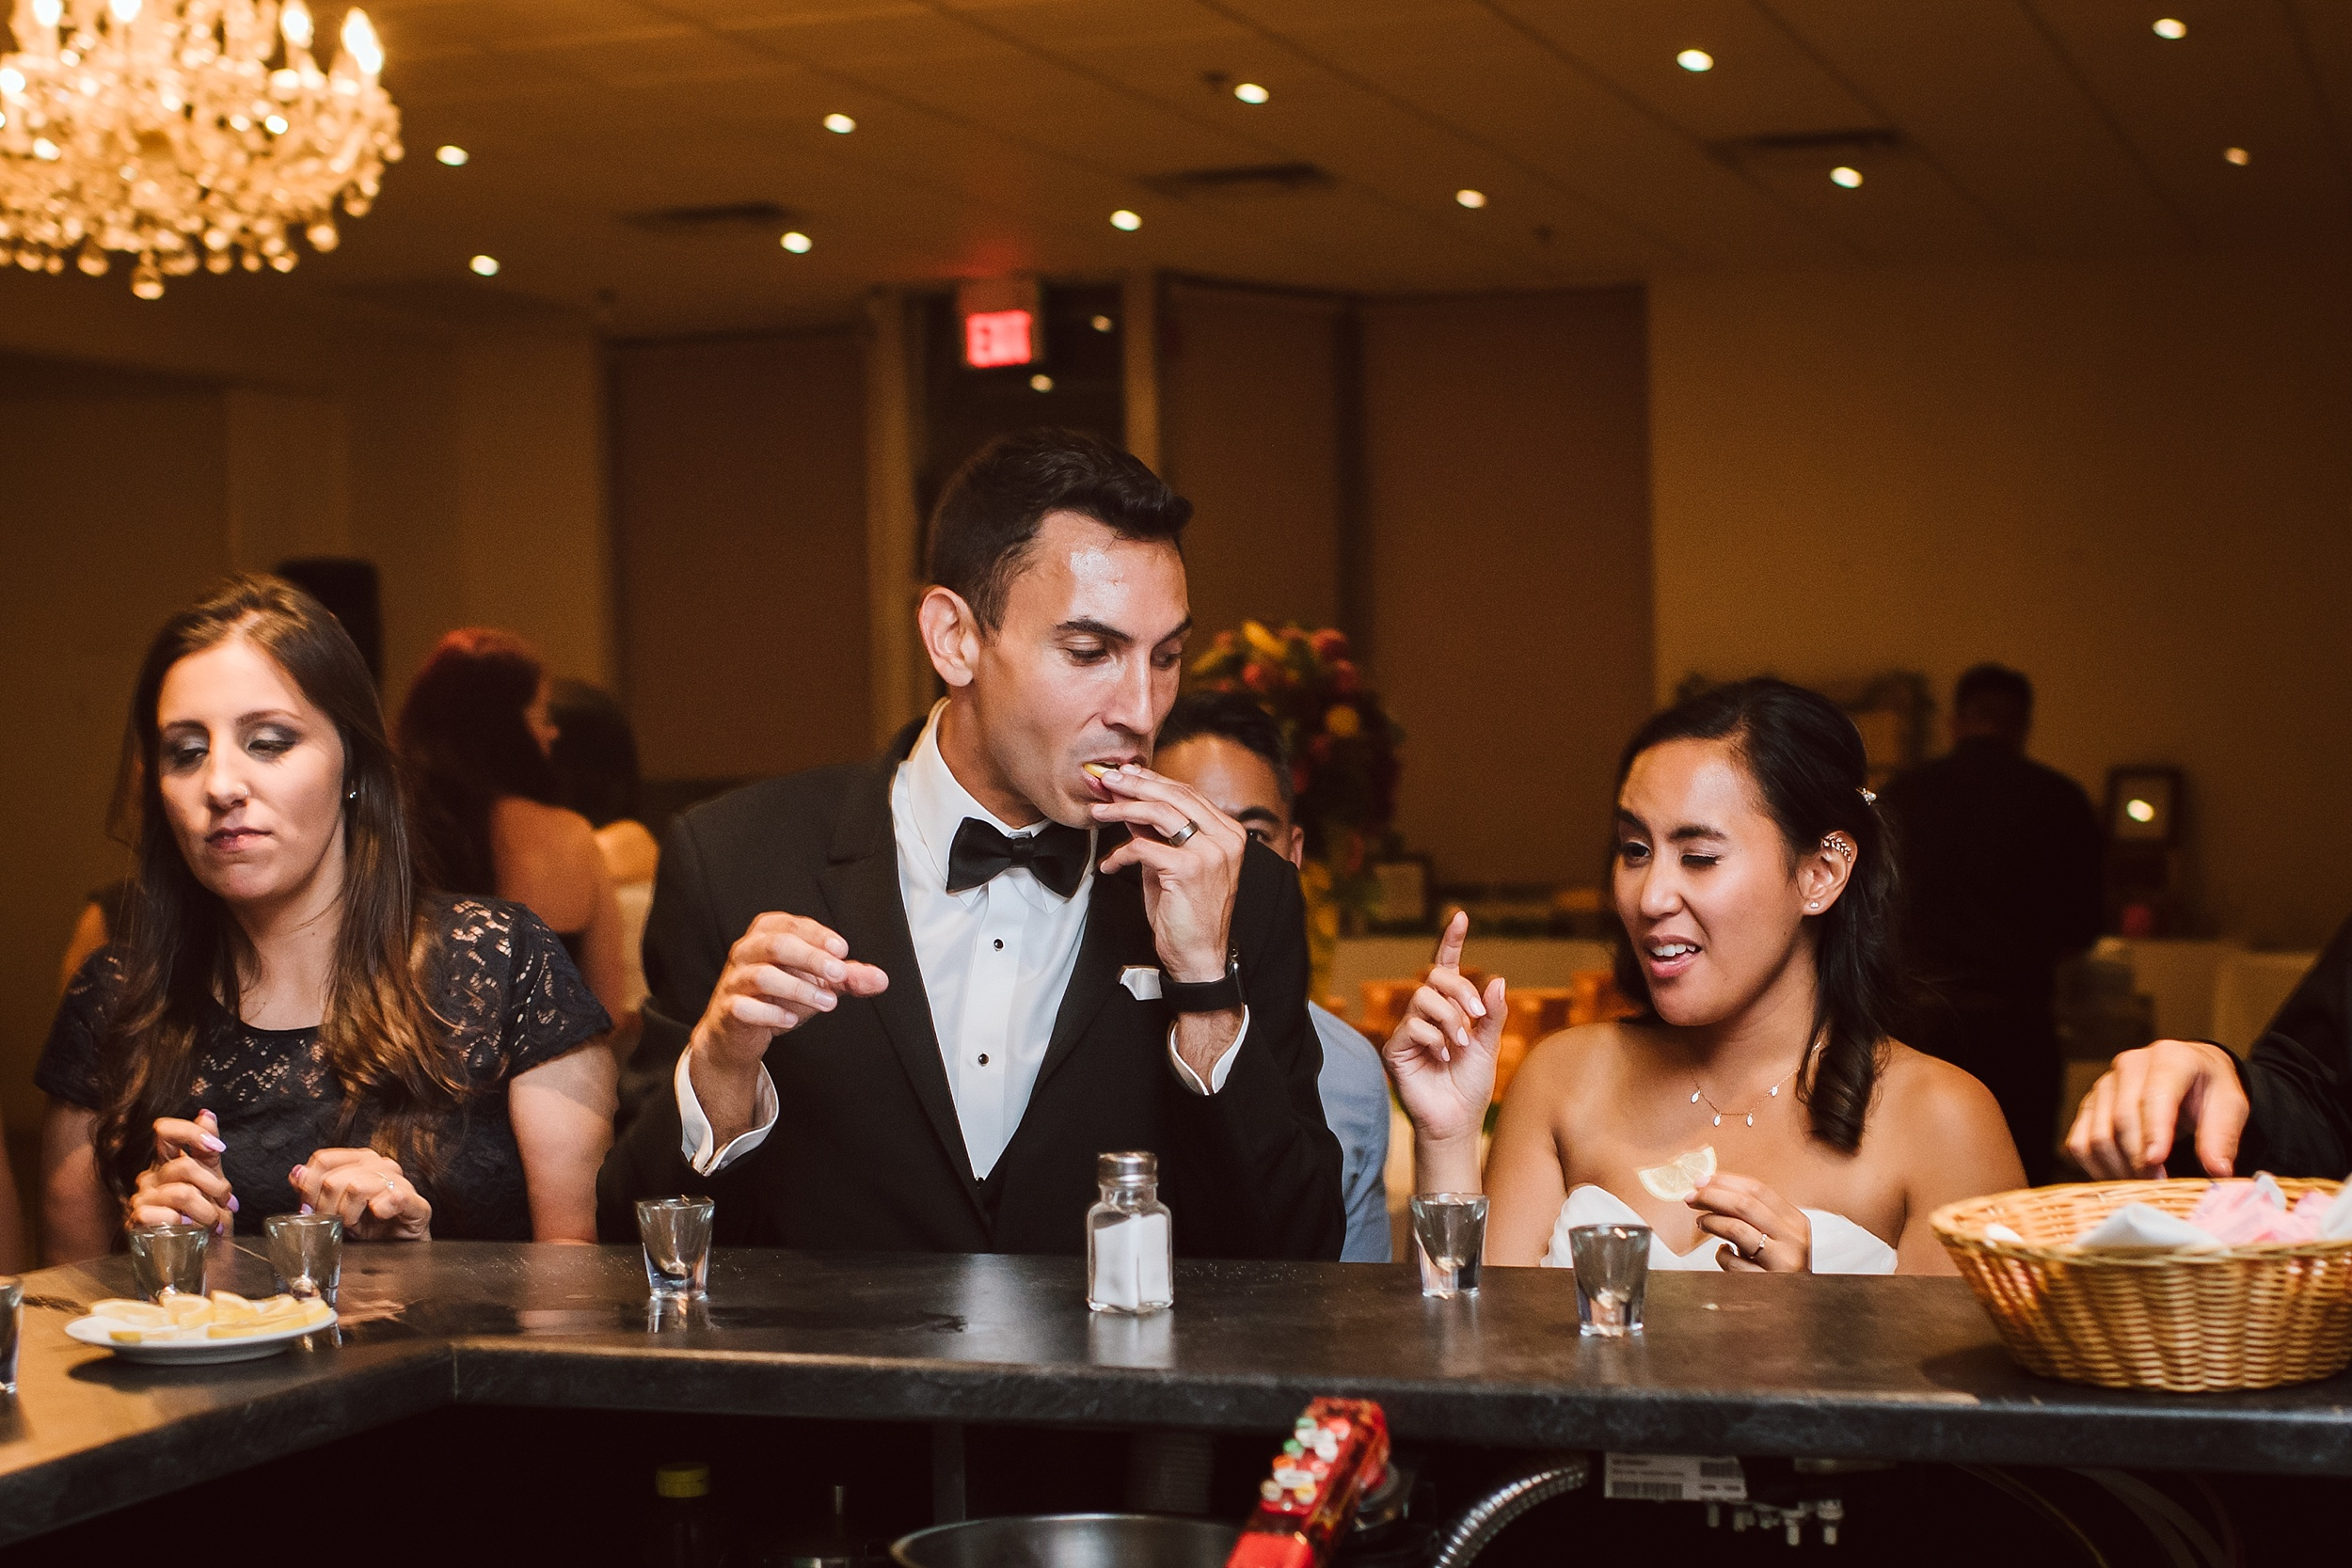 Toronto_Wedding_Photographer_Catholic_Portuguese_0108.jpg